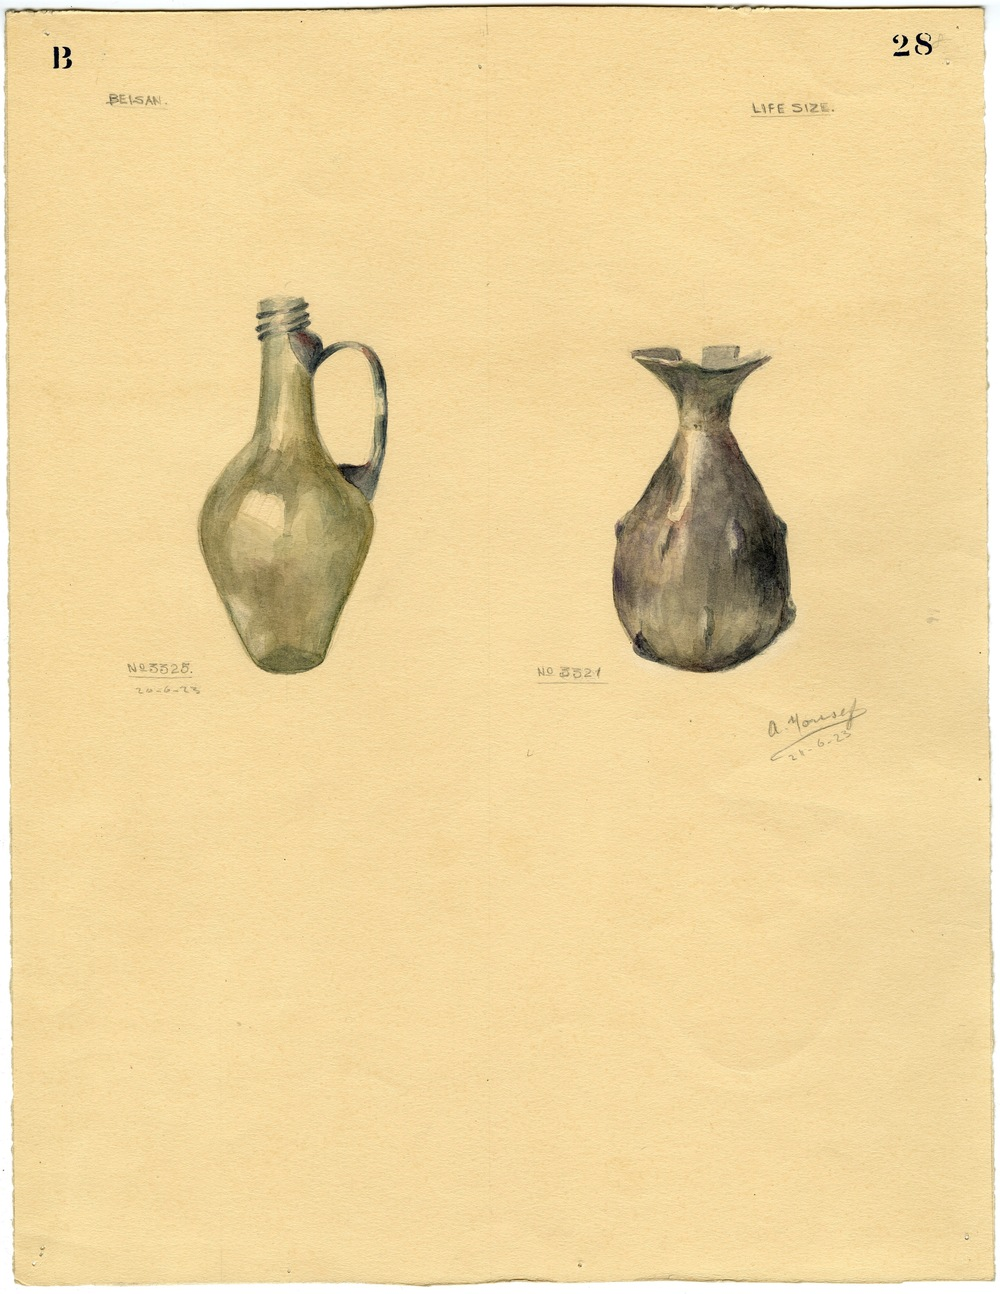 Watercolor of two small glass vessels # 3325 and 3321, from the Fisher excavations.